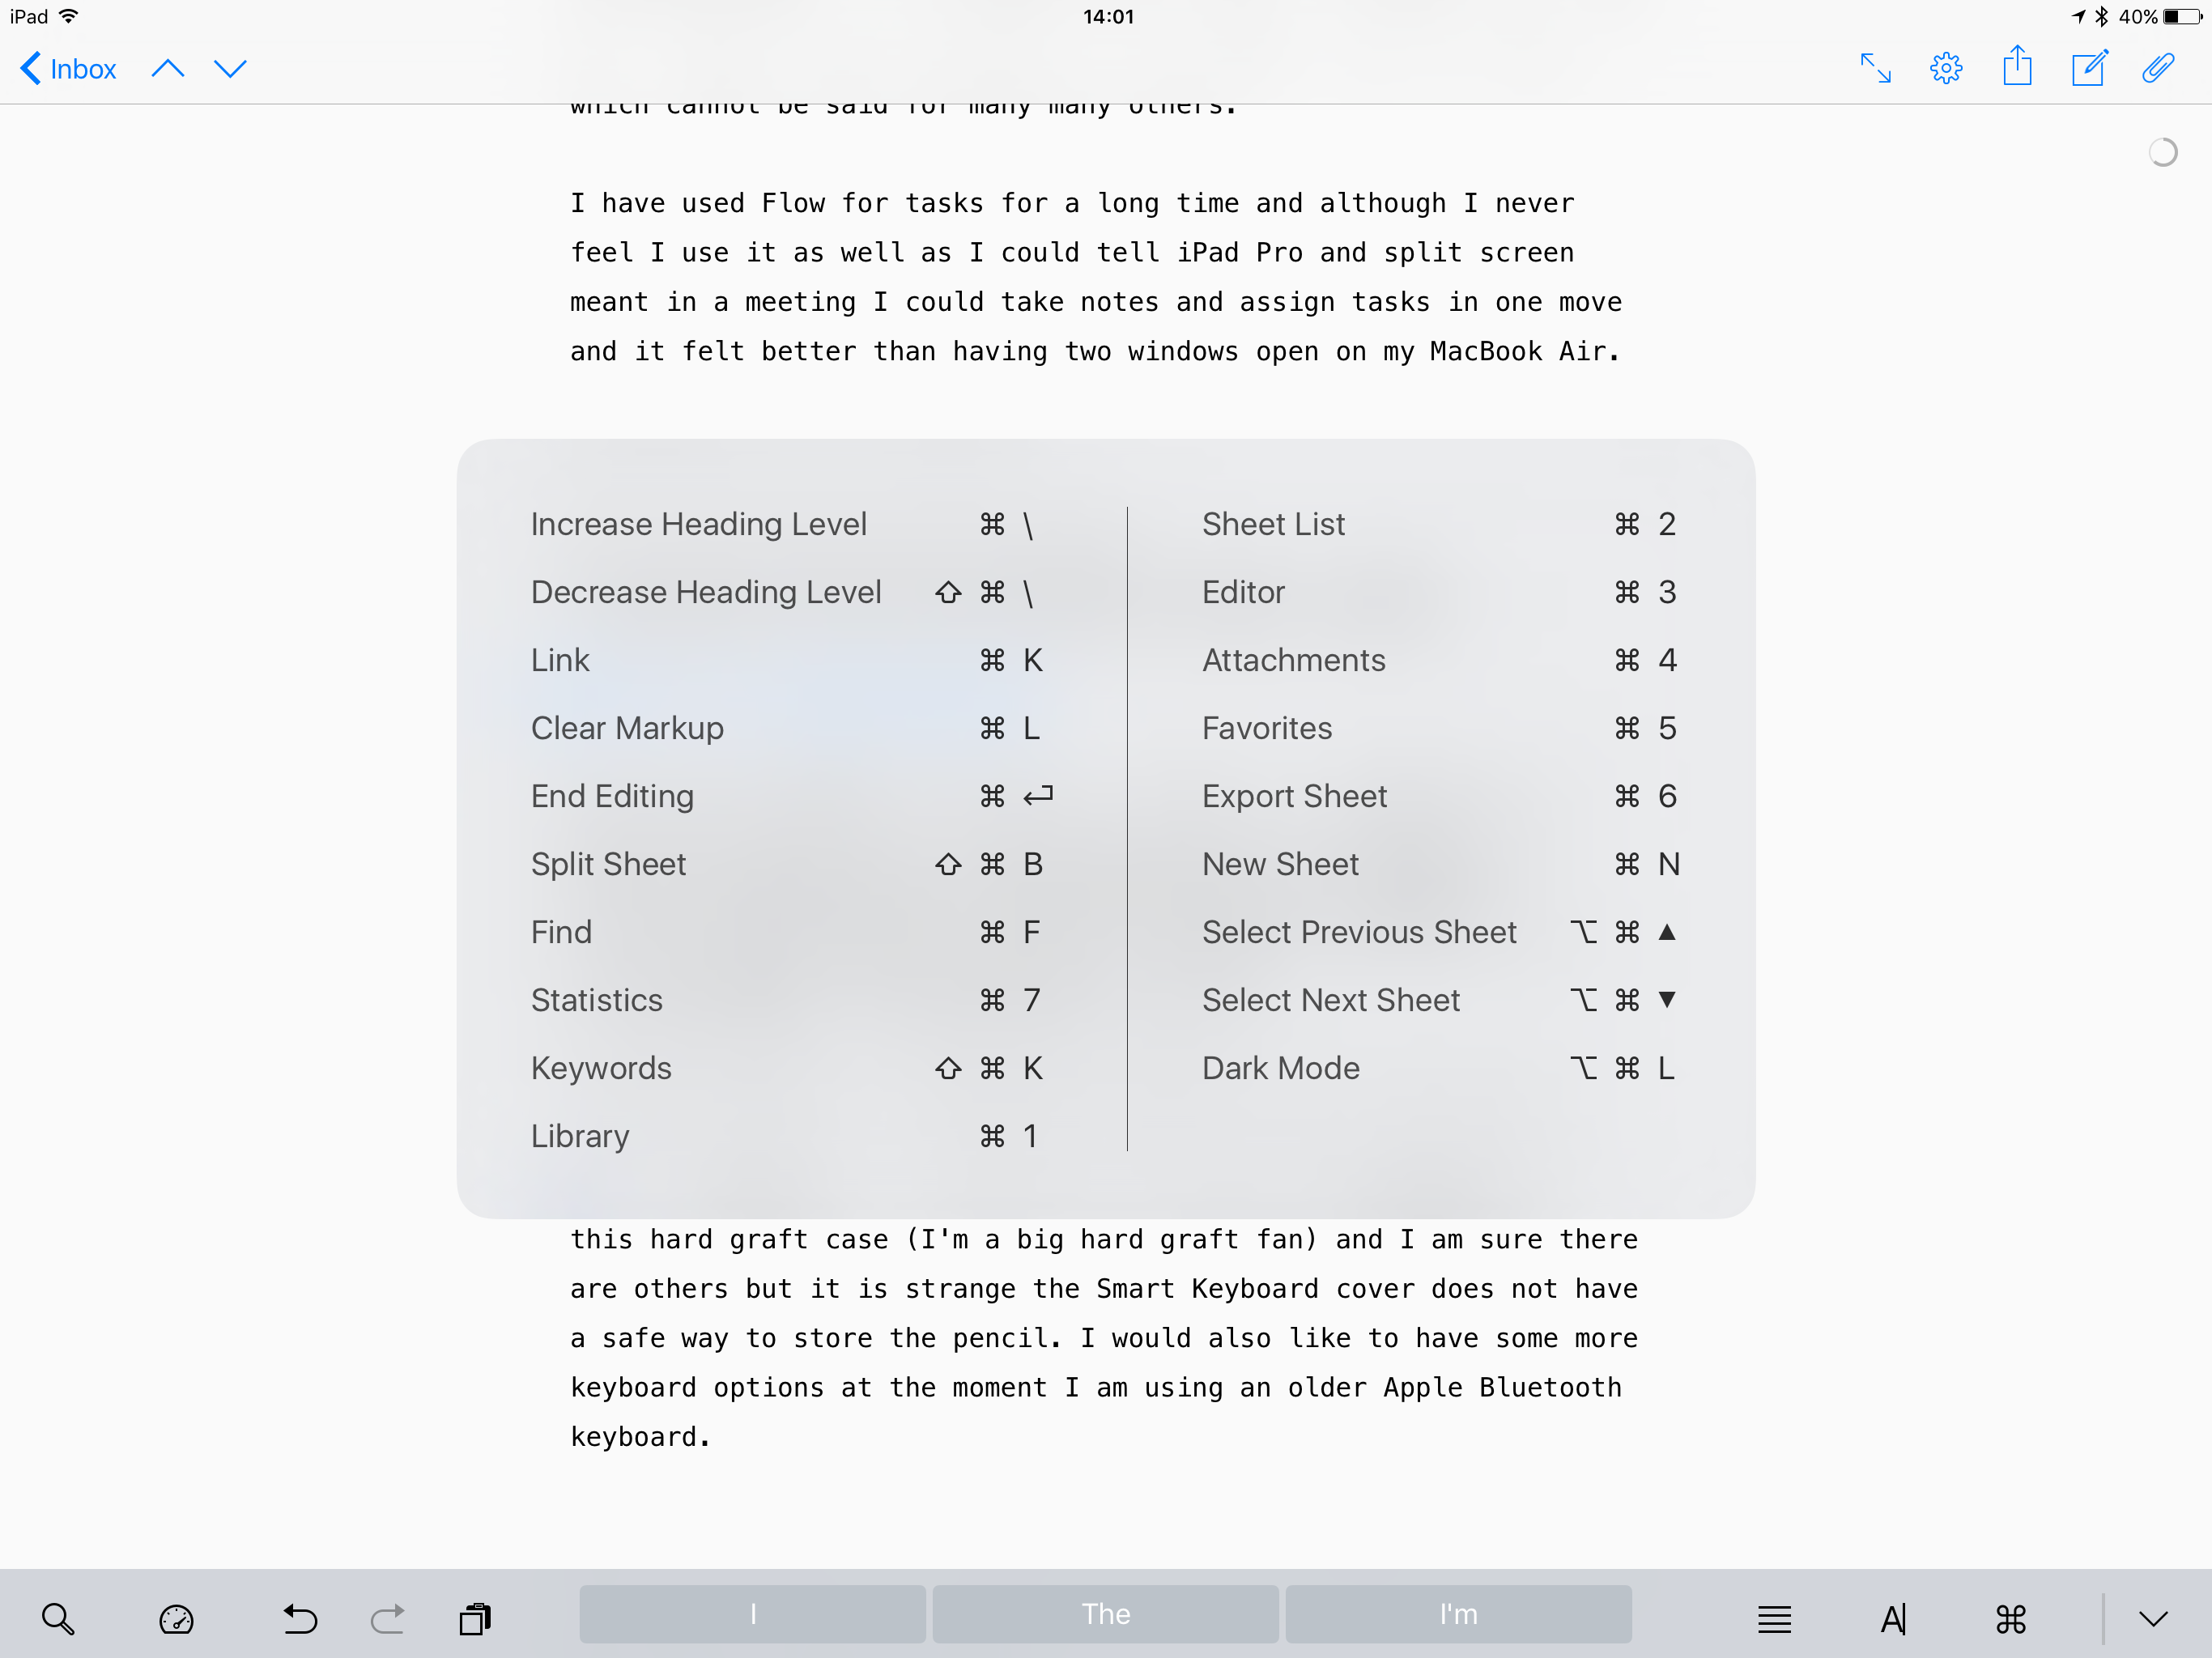 Holding CMD in Ulysses shows a number of shortcuts excellent UI